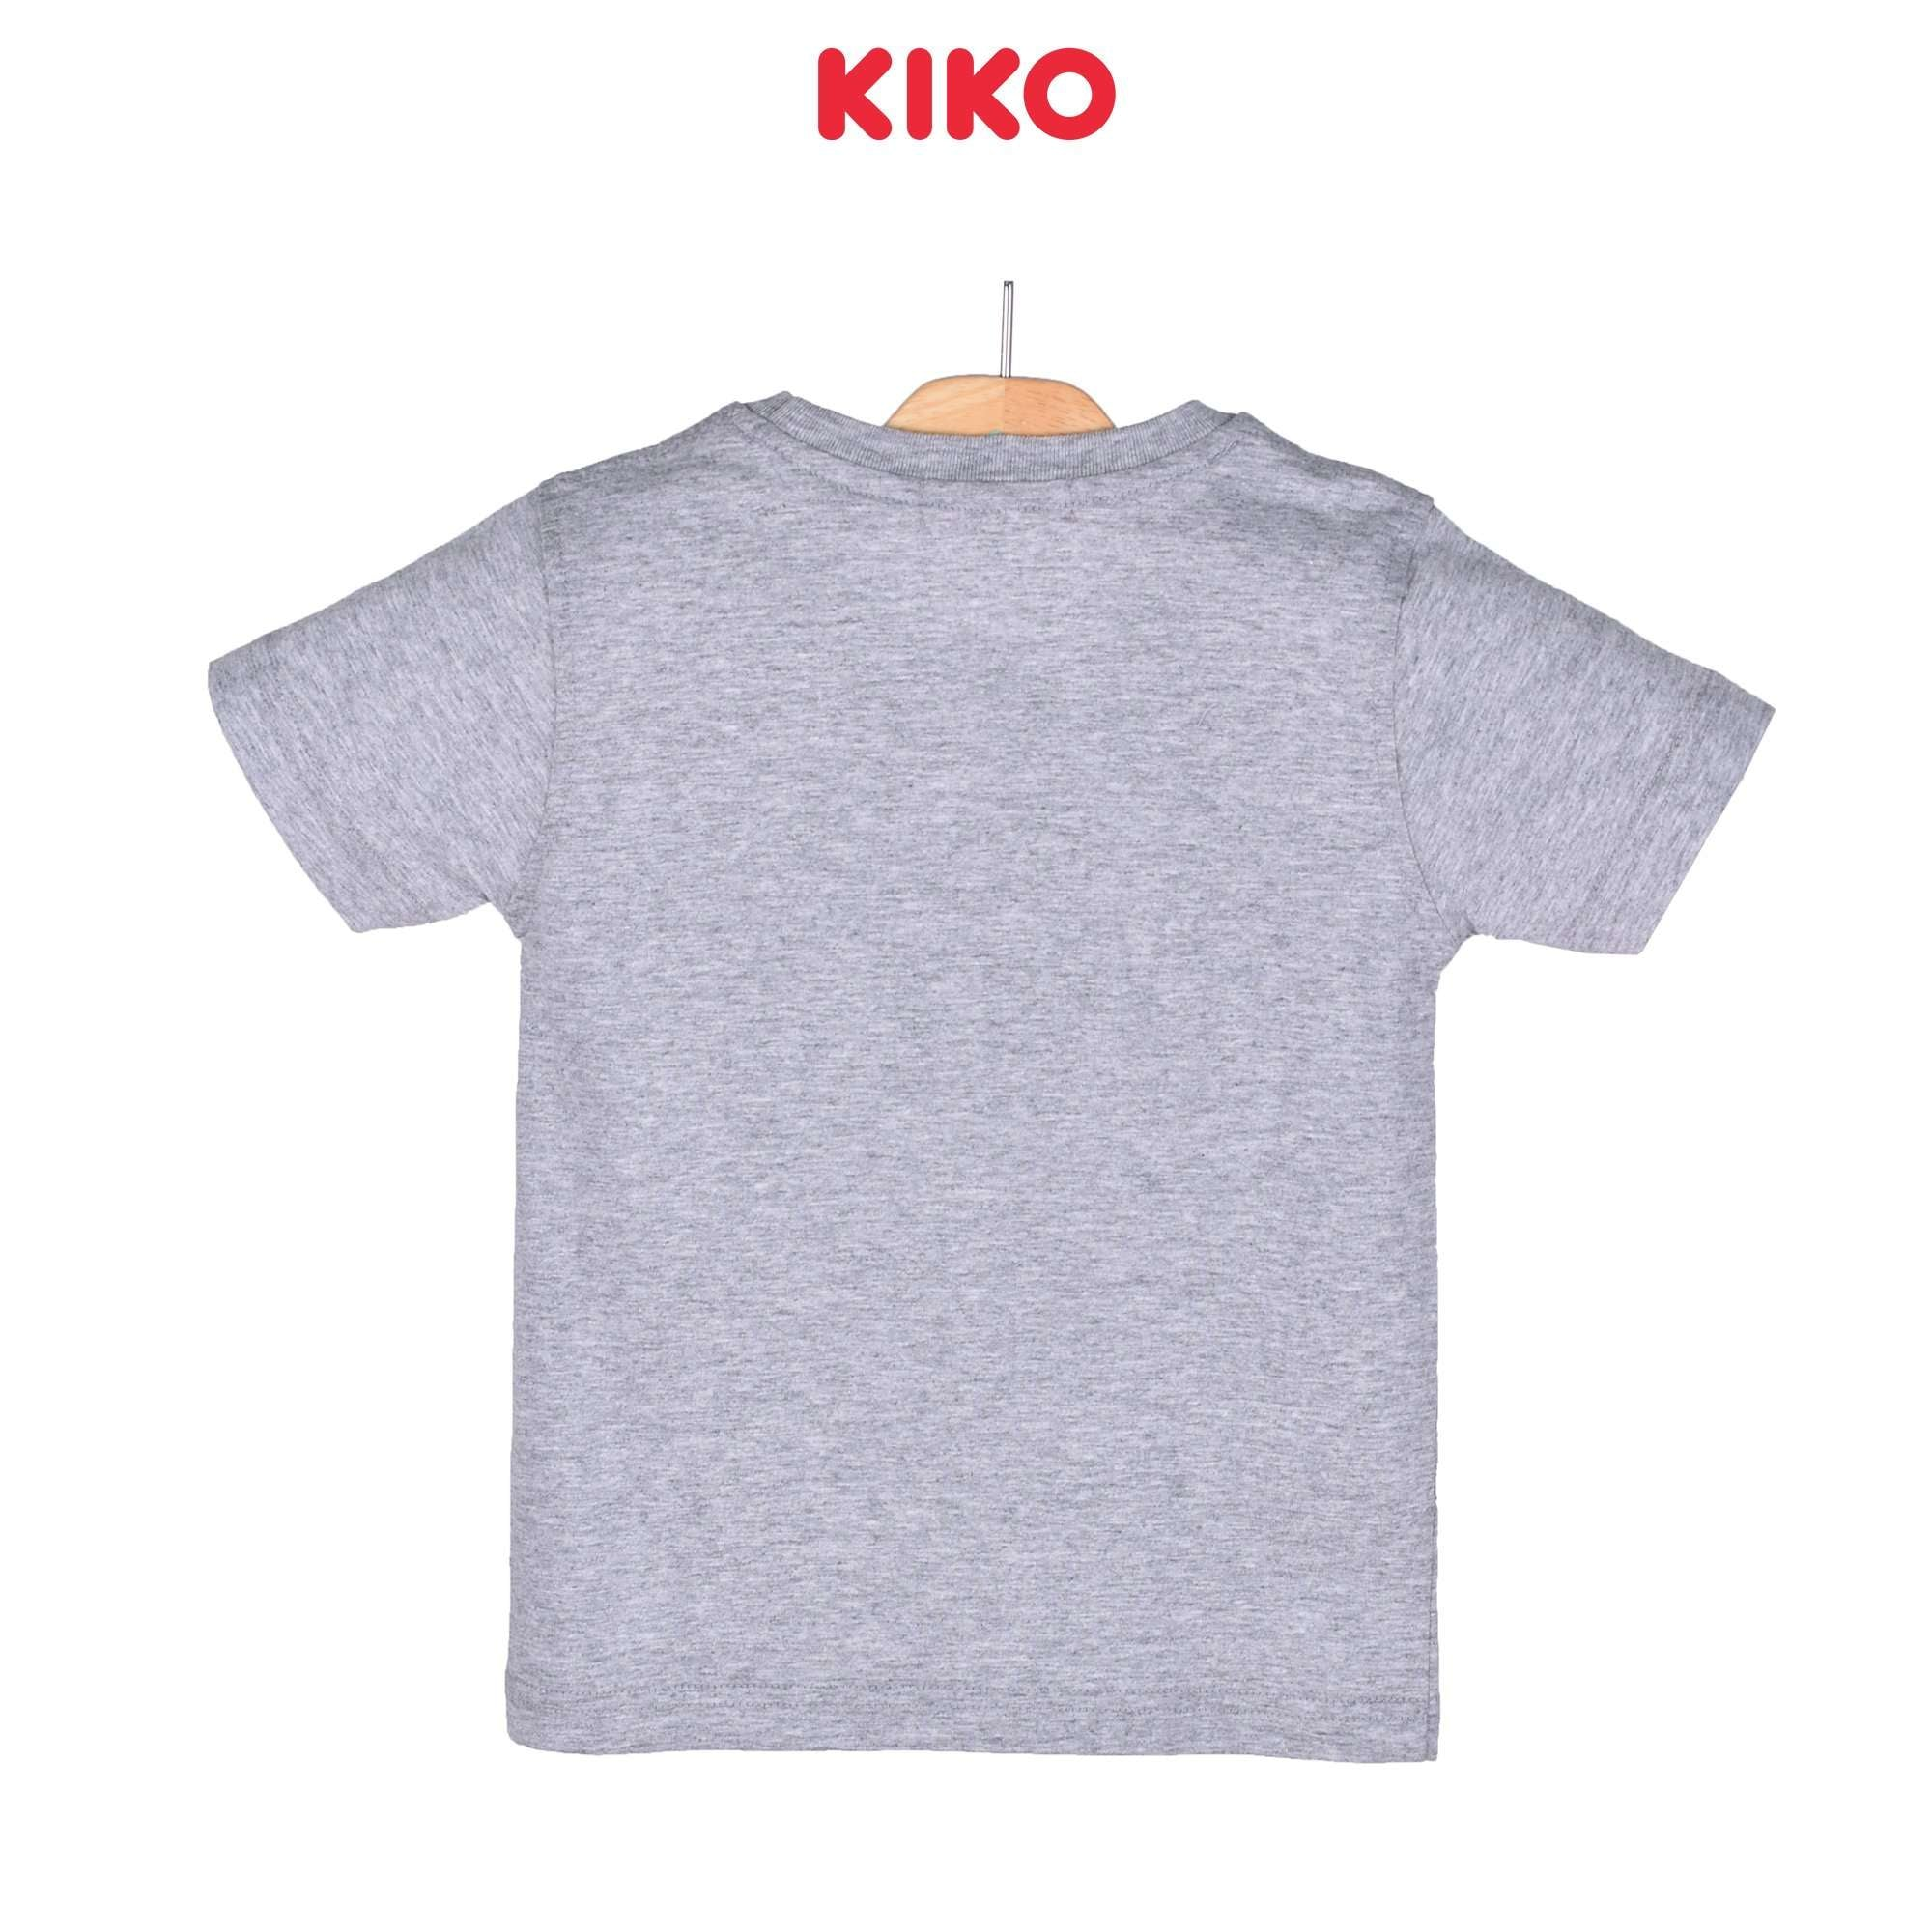 KIKO Boy Short Sleeve Tee 130087-111 : Buy KIKO online at CMG.MY